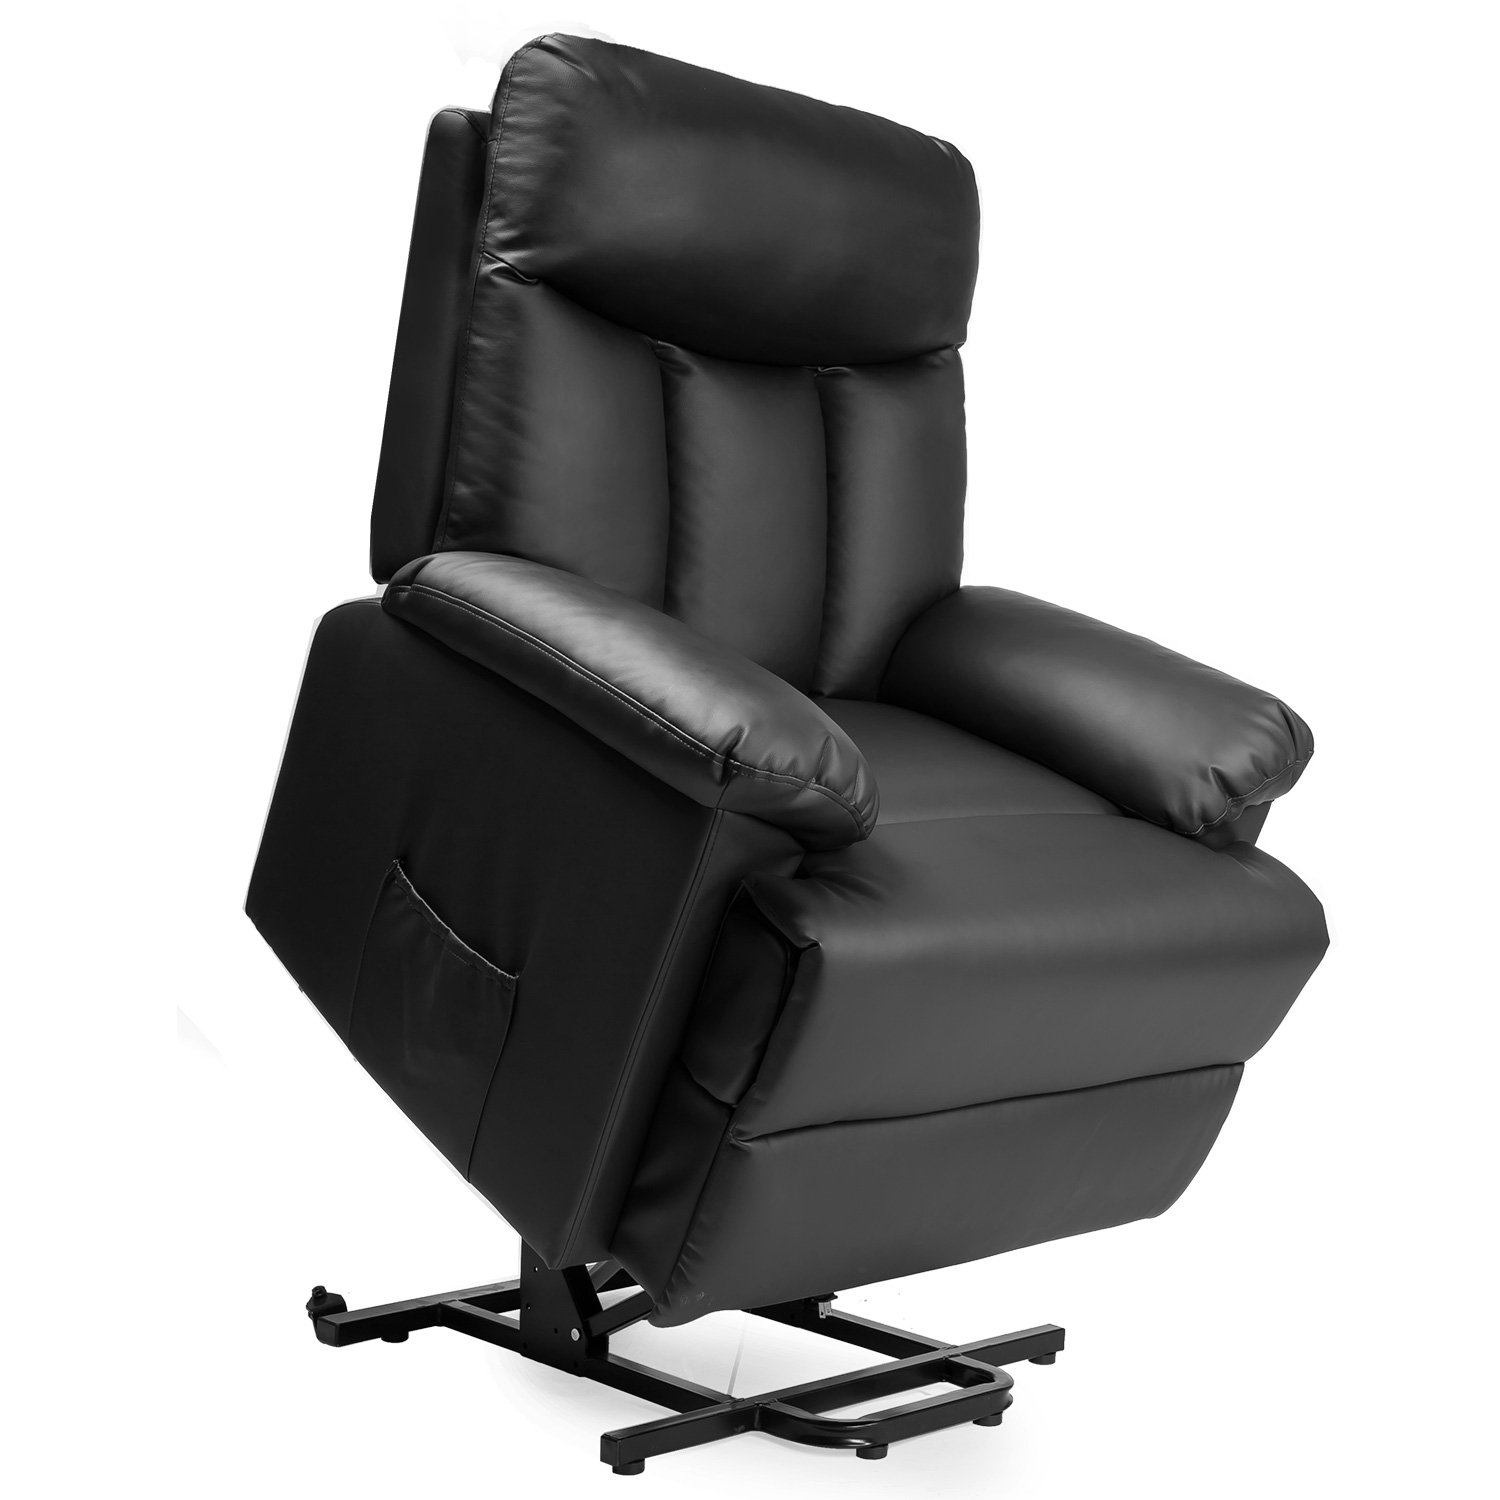 Merax Power Lift Chair and Power Recliner in PU Leather,Living Room Recliner with Heavy Duty Reclining Mechanism (black)